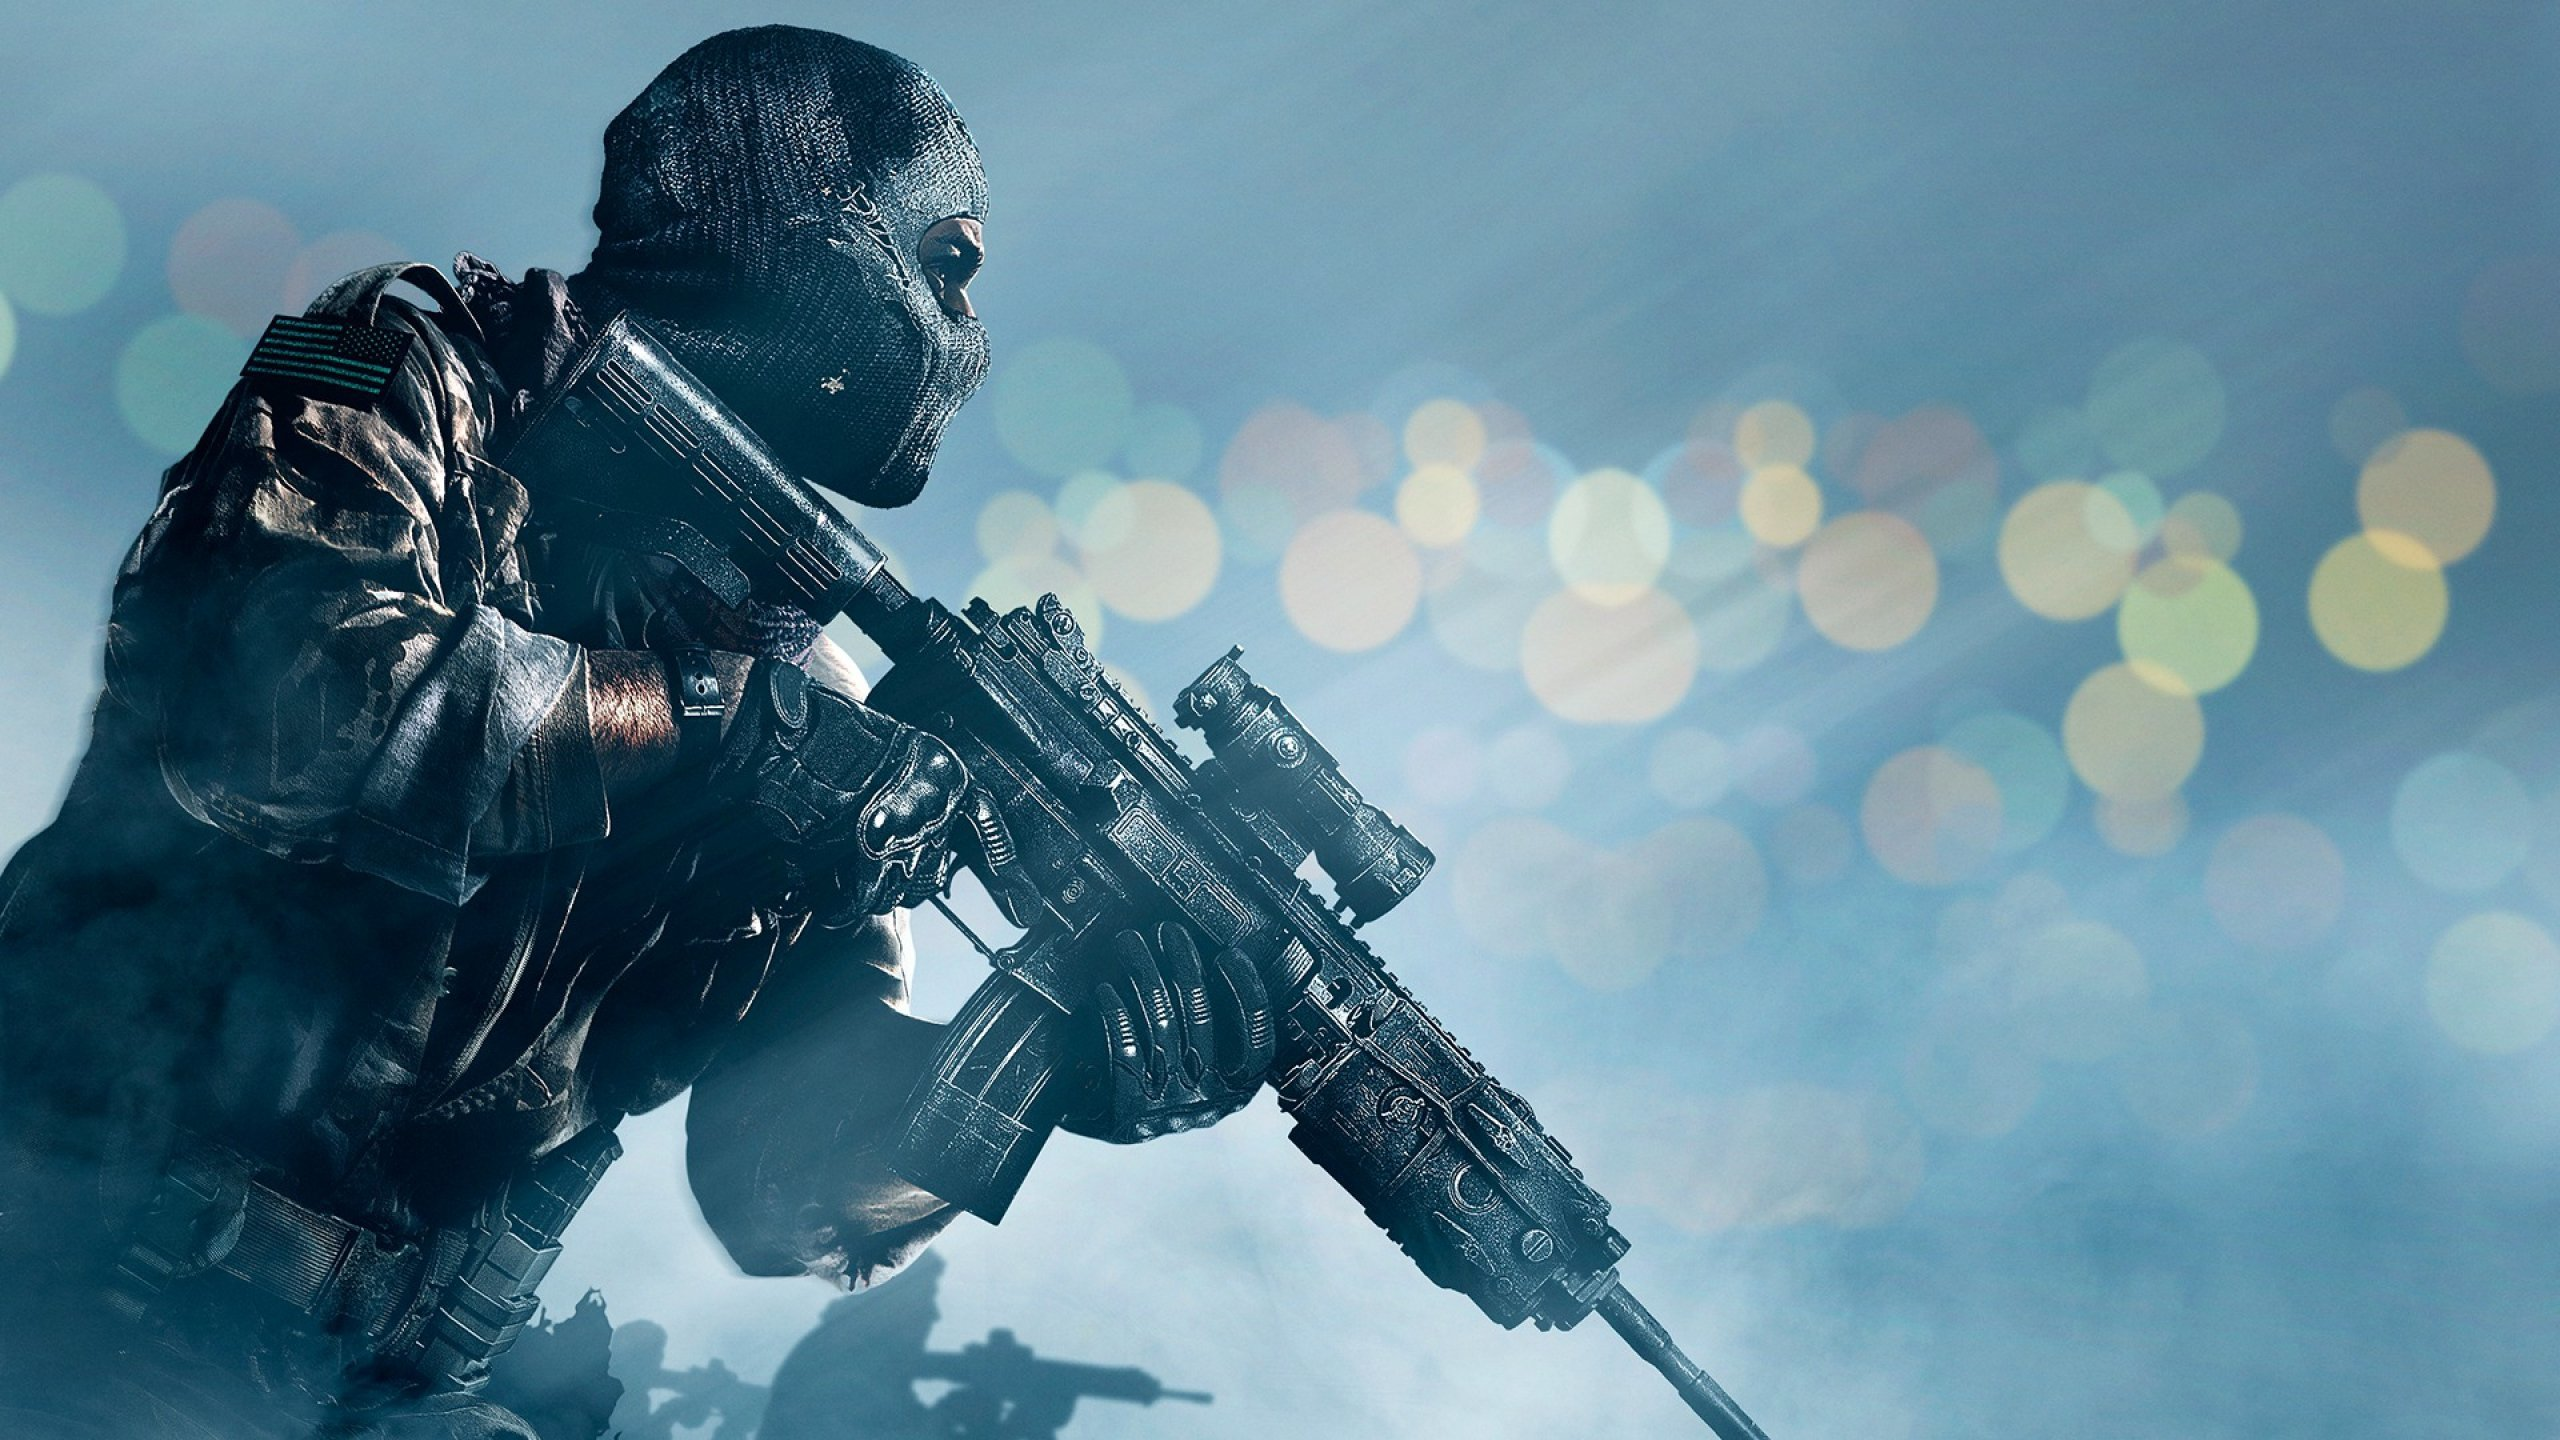 Call Of Duty Ghosts Wallpapers 2560x1440 Desktop Backgrounds